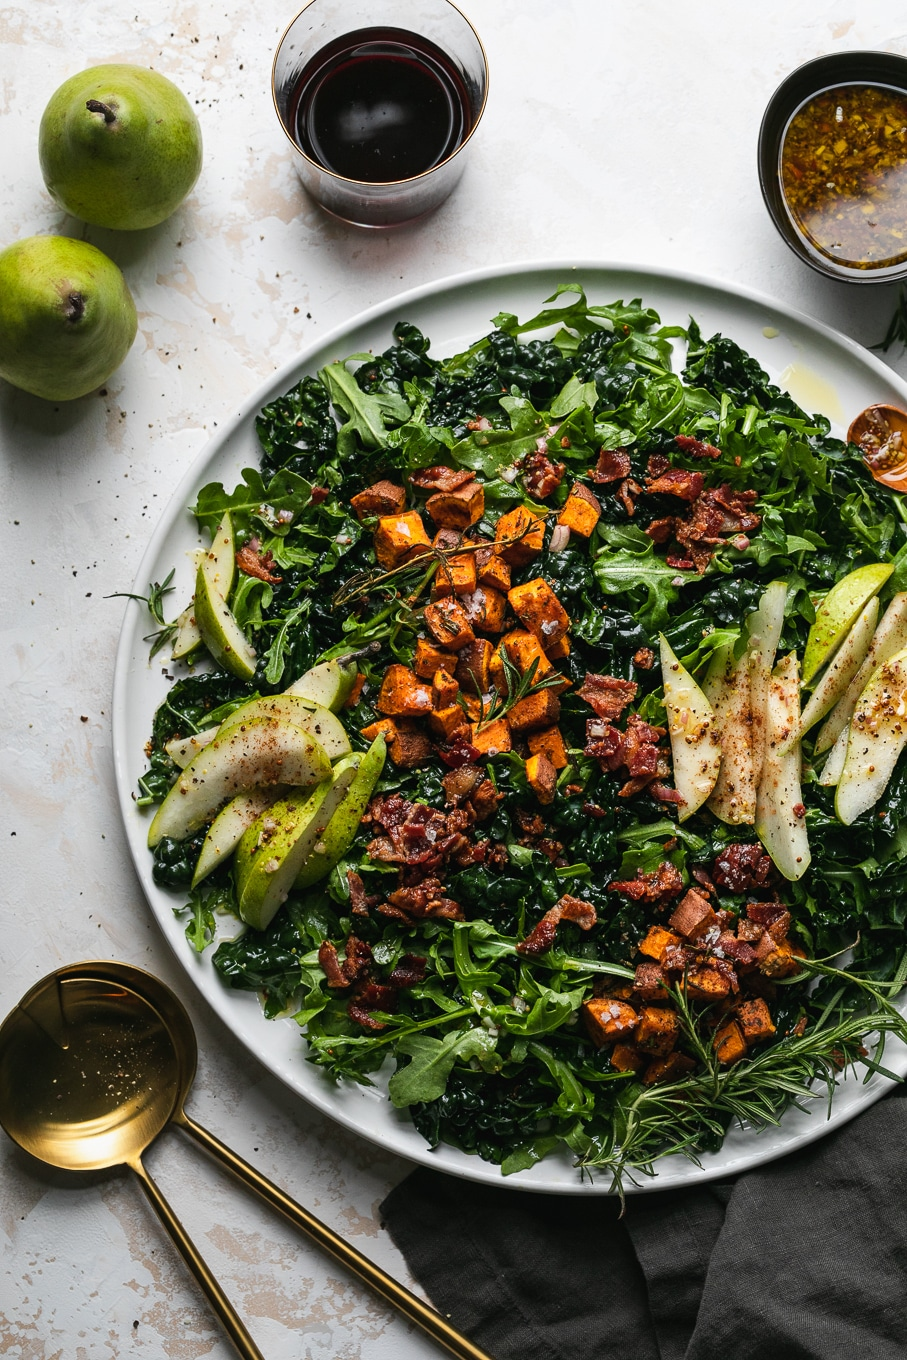 Overhead shot of a winter salad on a large platter